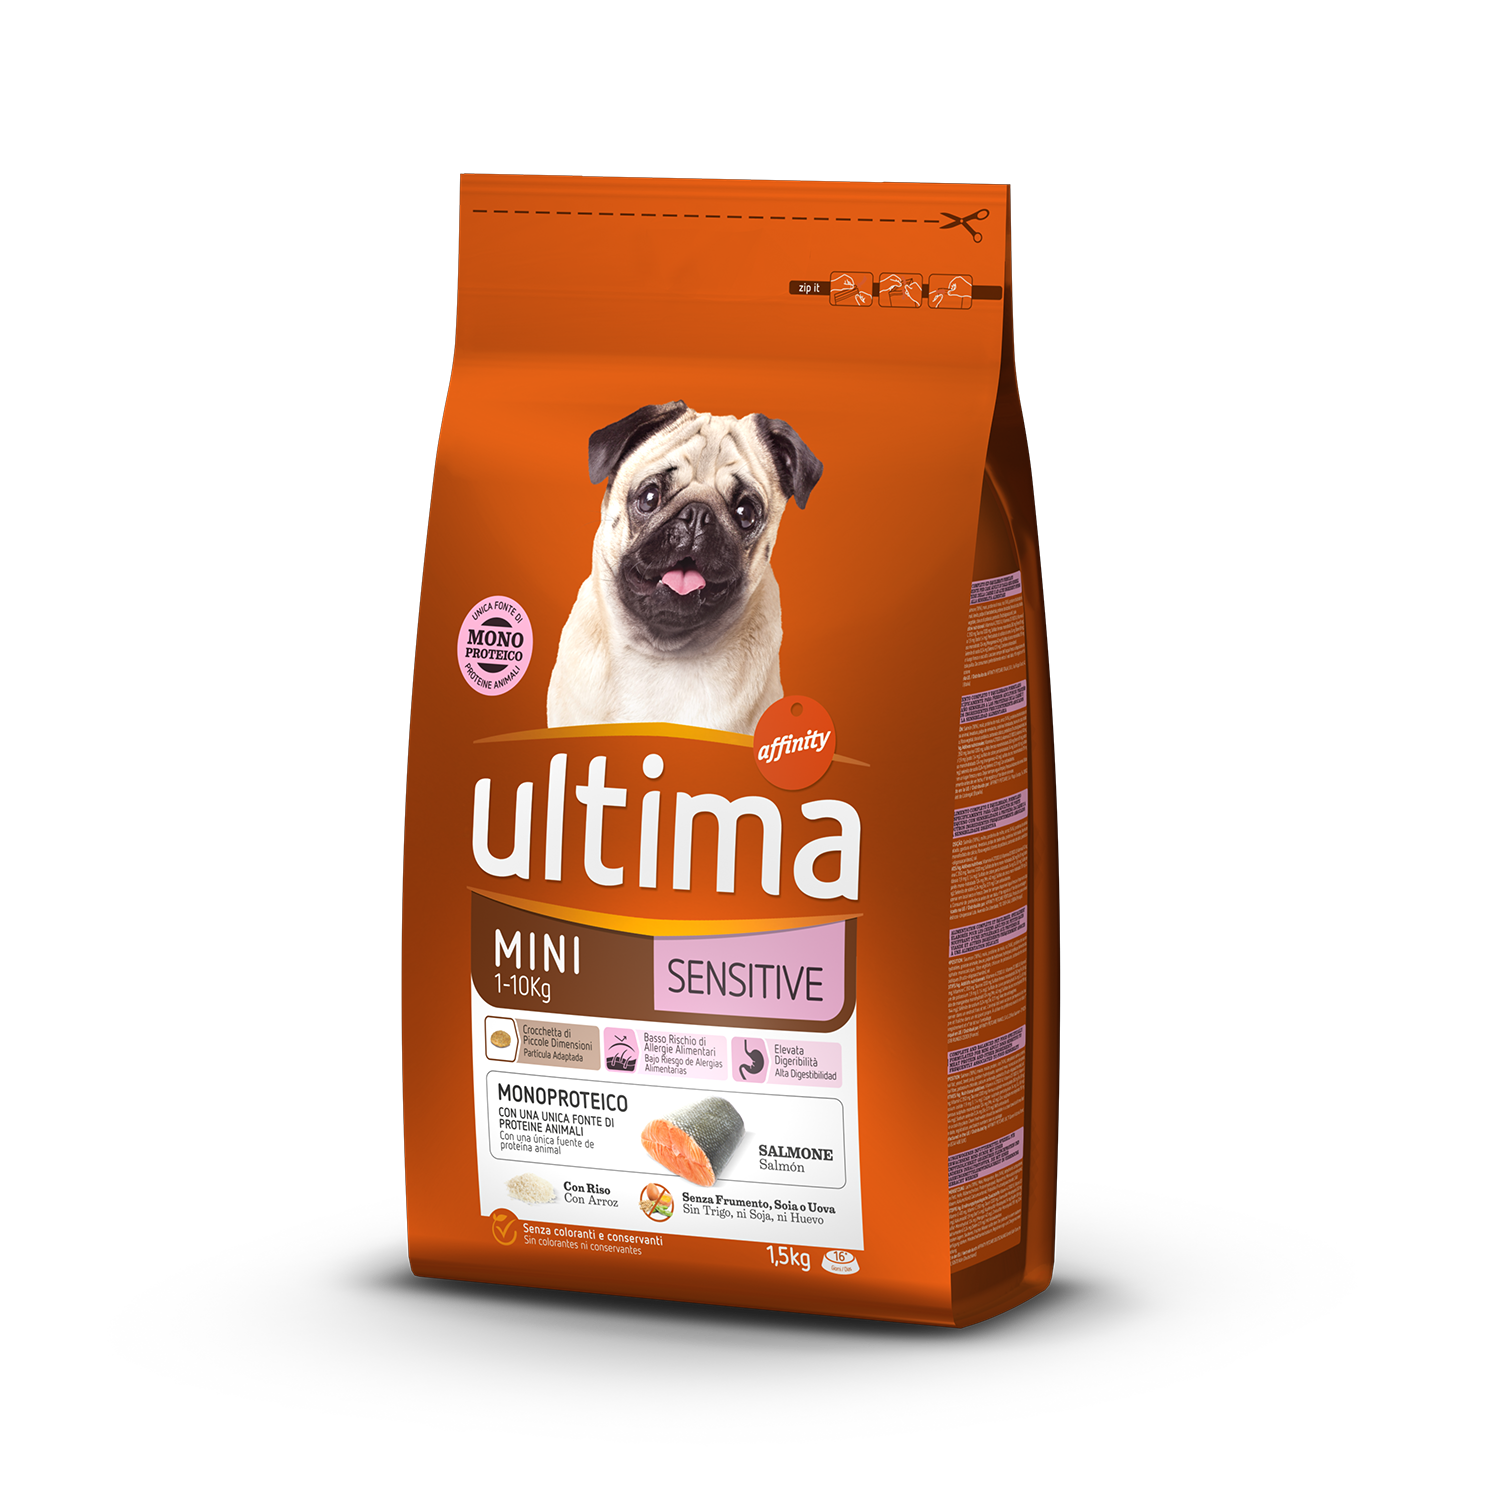 Ultima Pienso para Perro Adulto Mini Sensitive Sabor salmón 1,5kg.